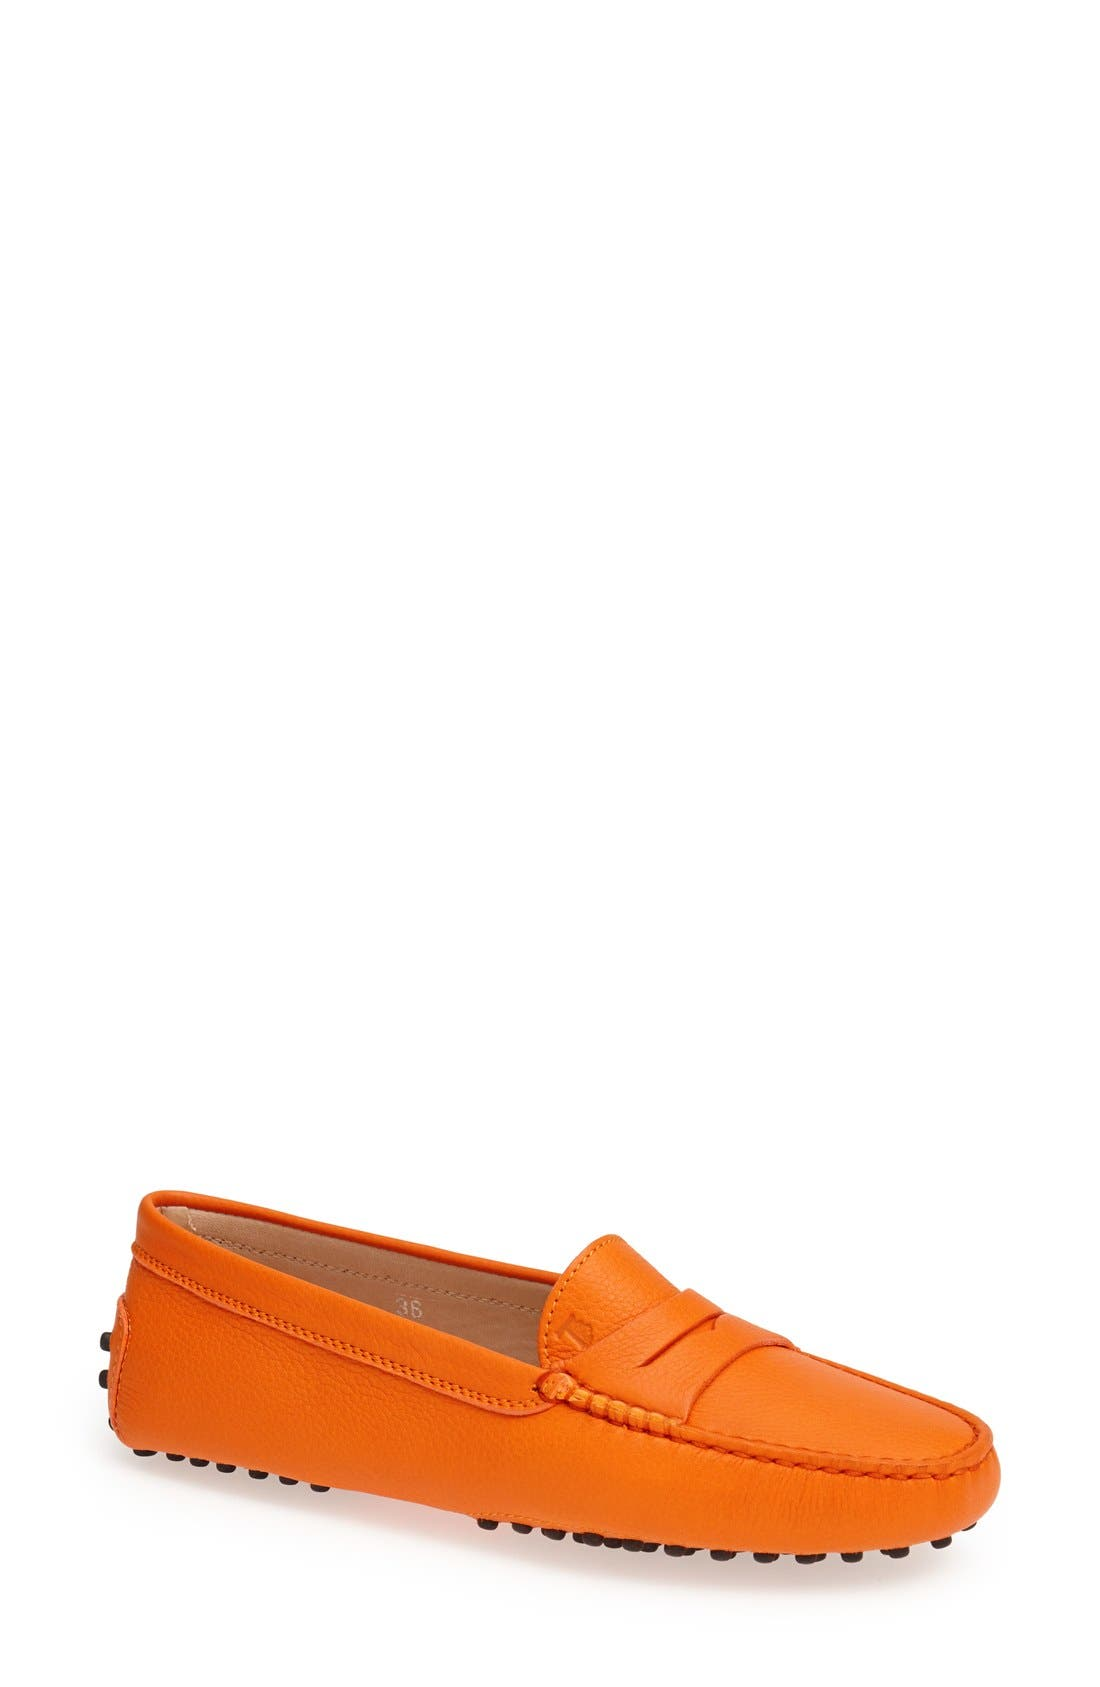 'Gommini' Driving Moccasin,                             Main thumbnail 1, color,                             ORANGE